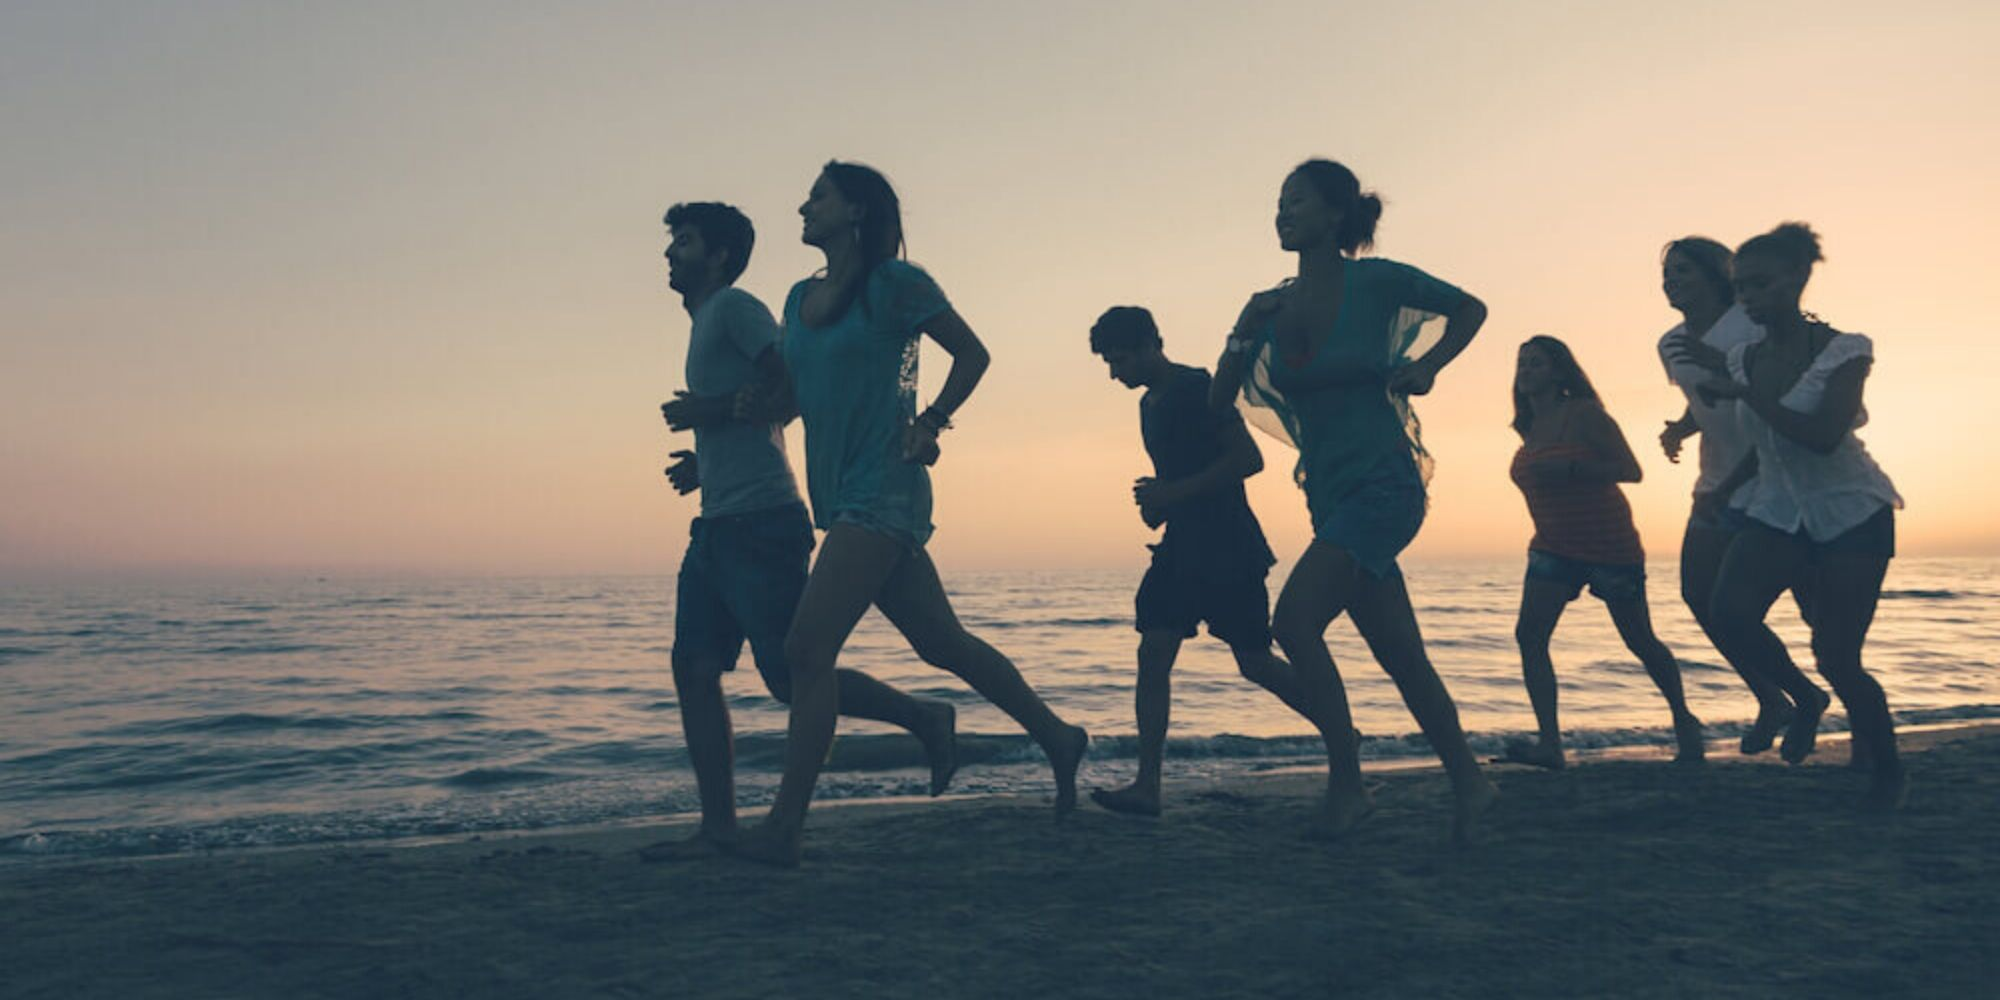 Group running together on a beach at sunset